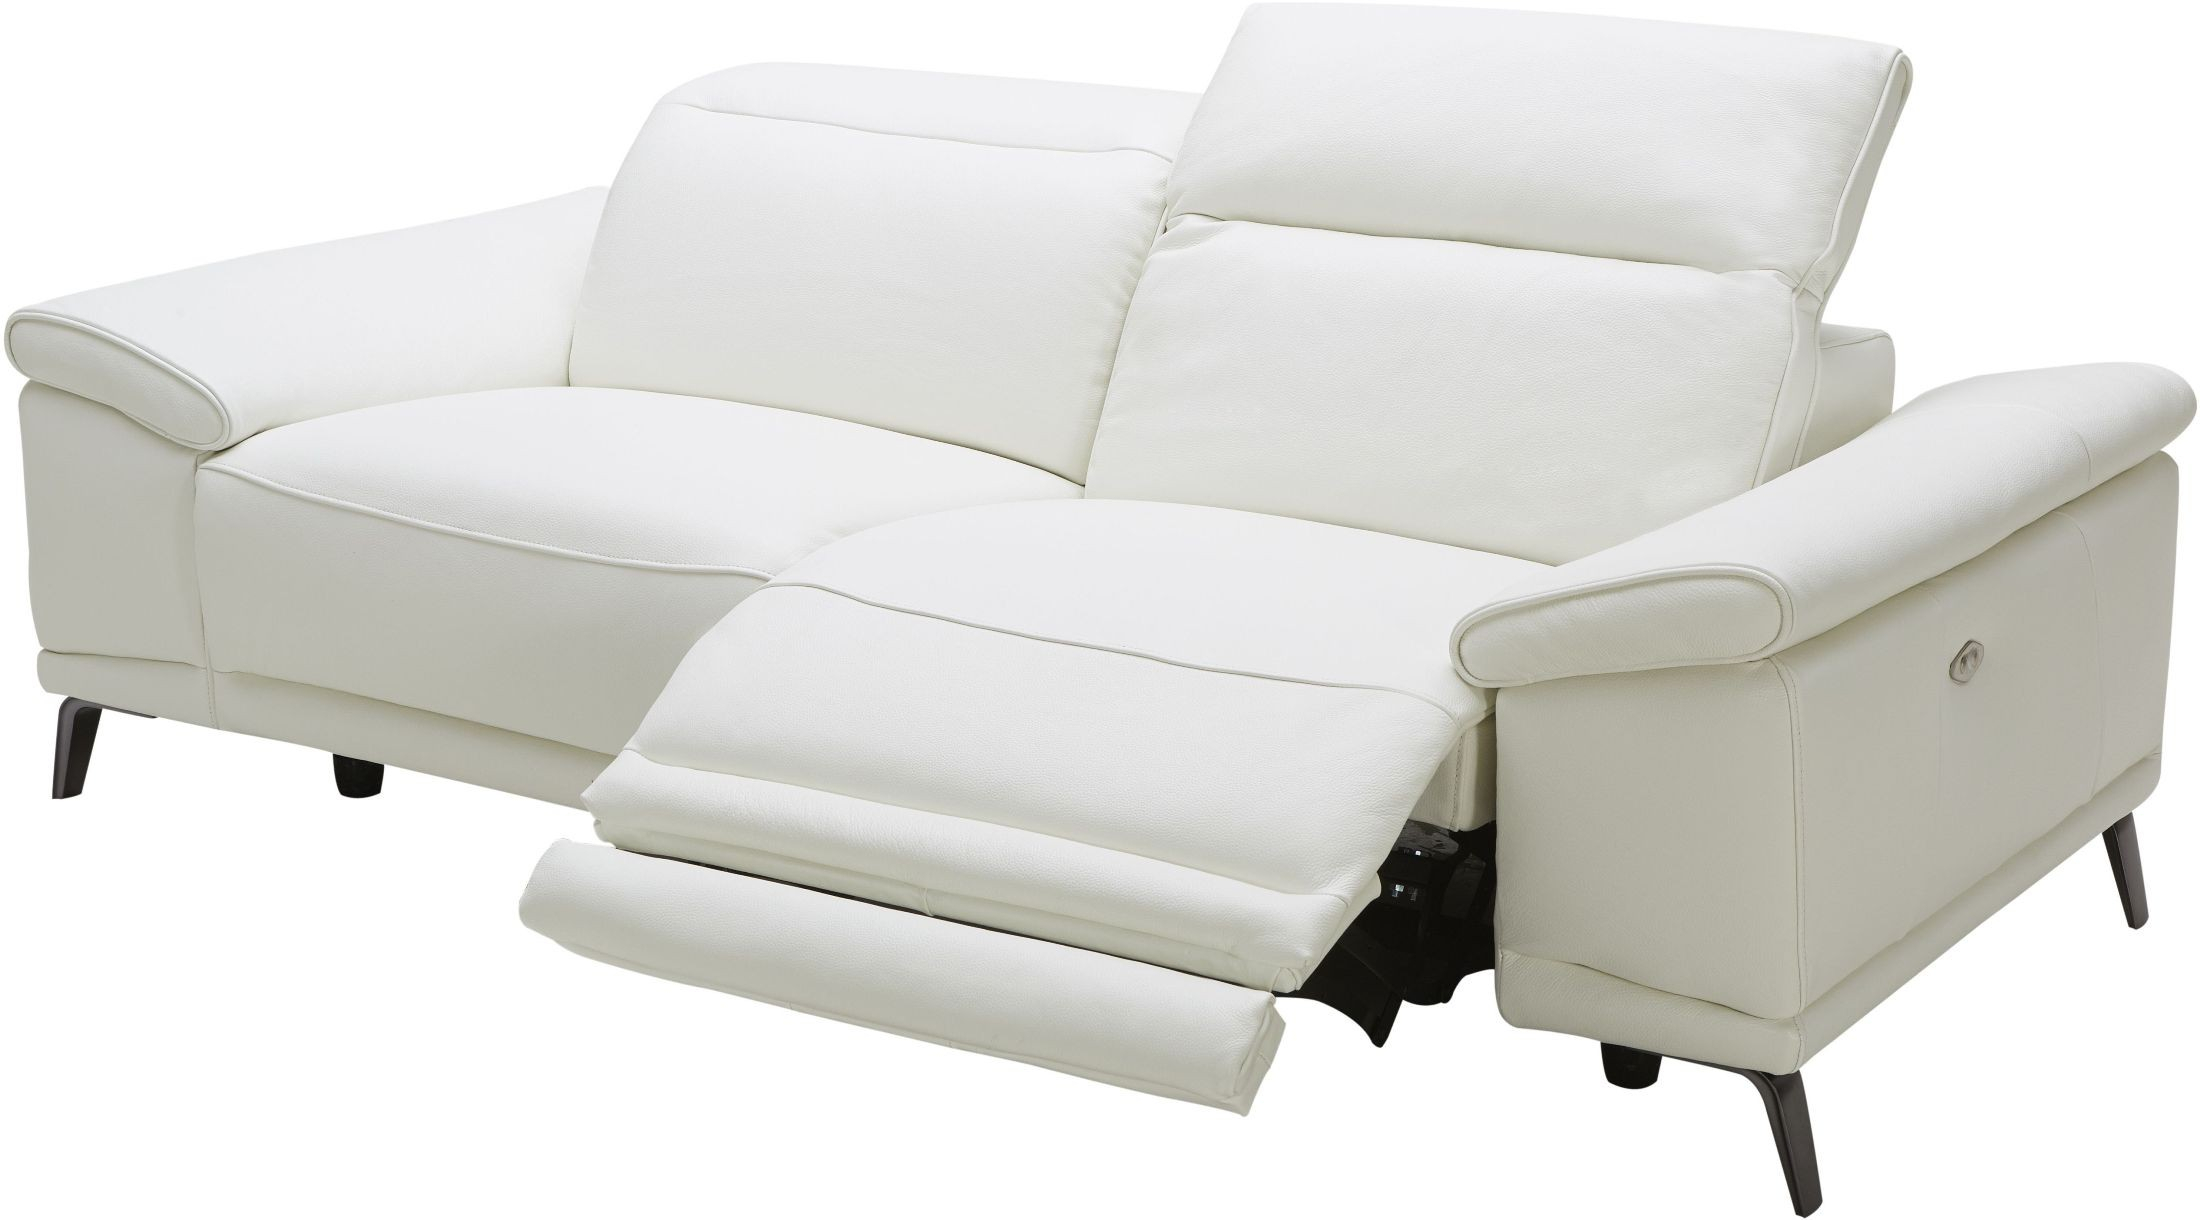 Gaia White Leather Power Reclining Sofa From Jnm | Coleman For White Sofa Chairs (View 15 of 15)